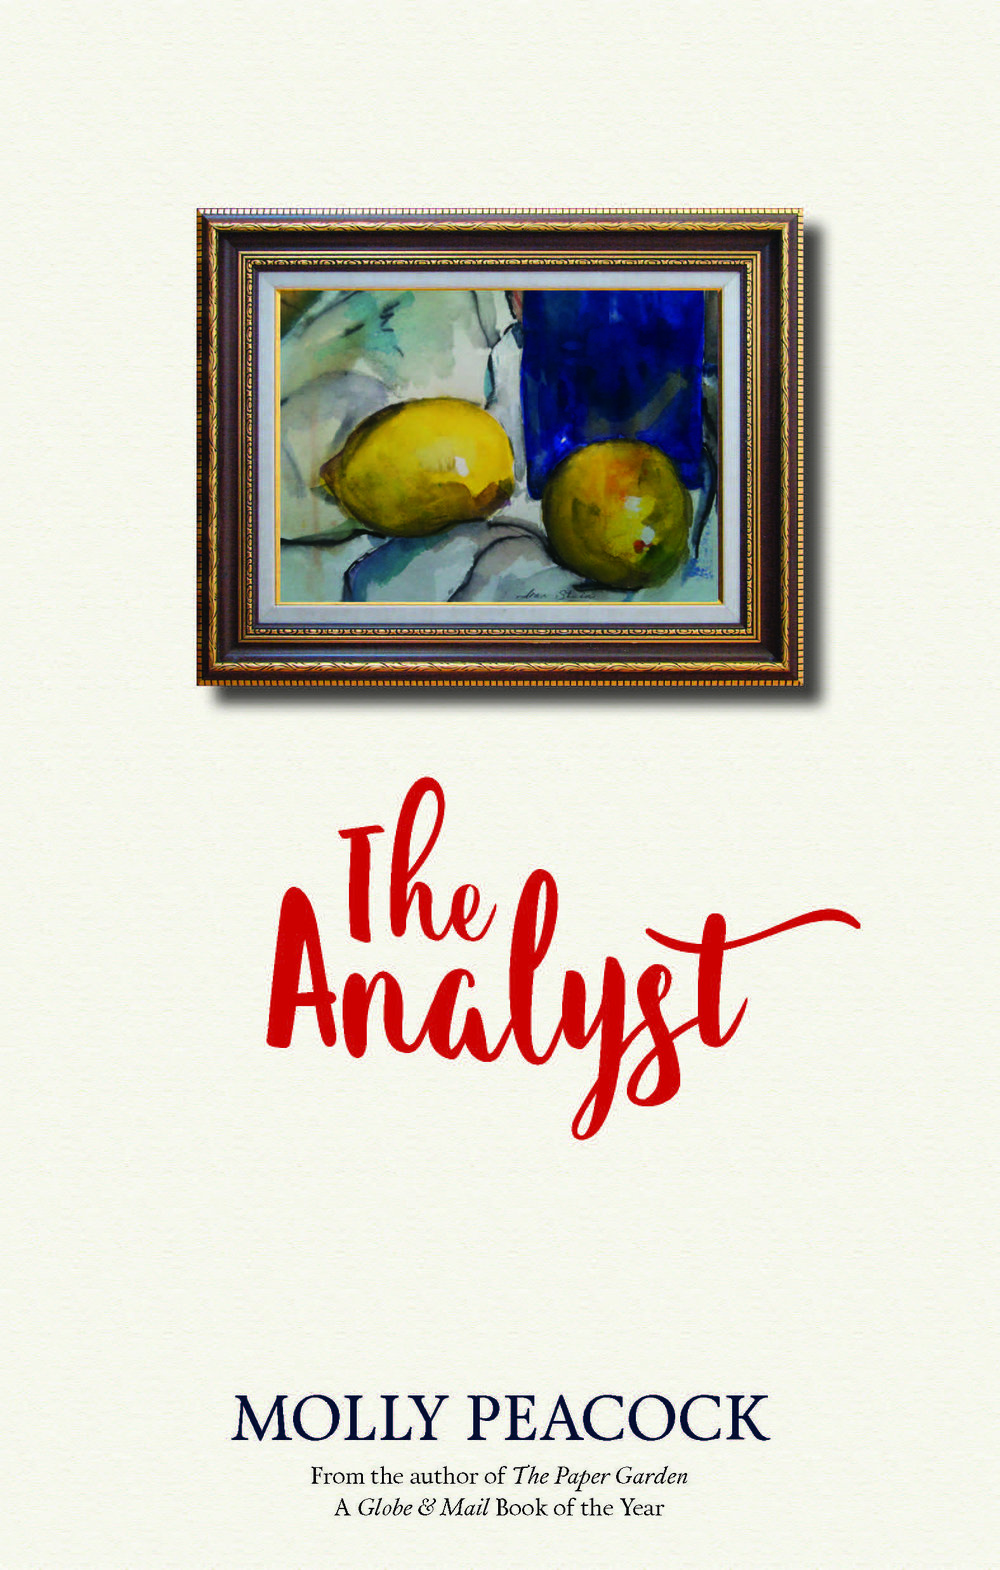 Molly Peacock. The Analyst. Biblioasis. $18.95, 96 pp., ISBN: 9781771961639